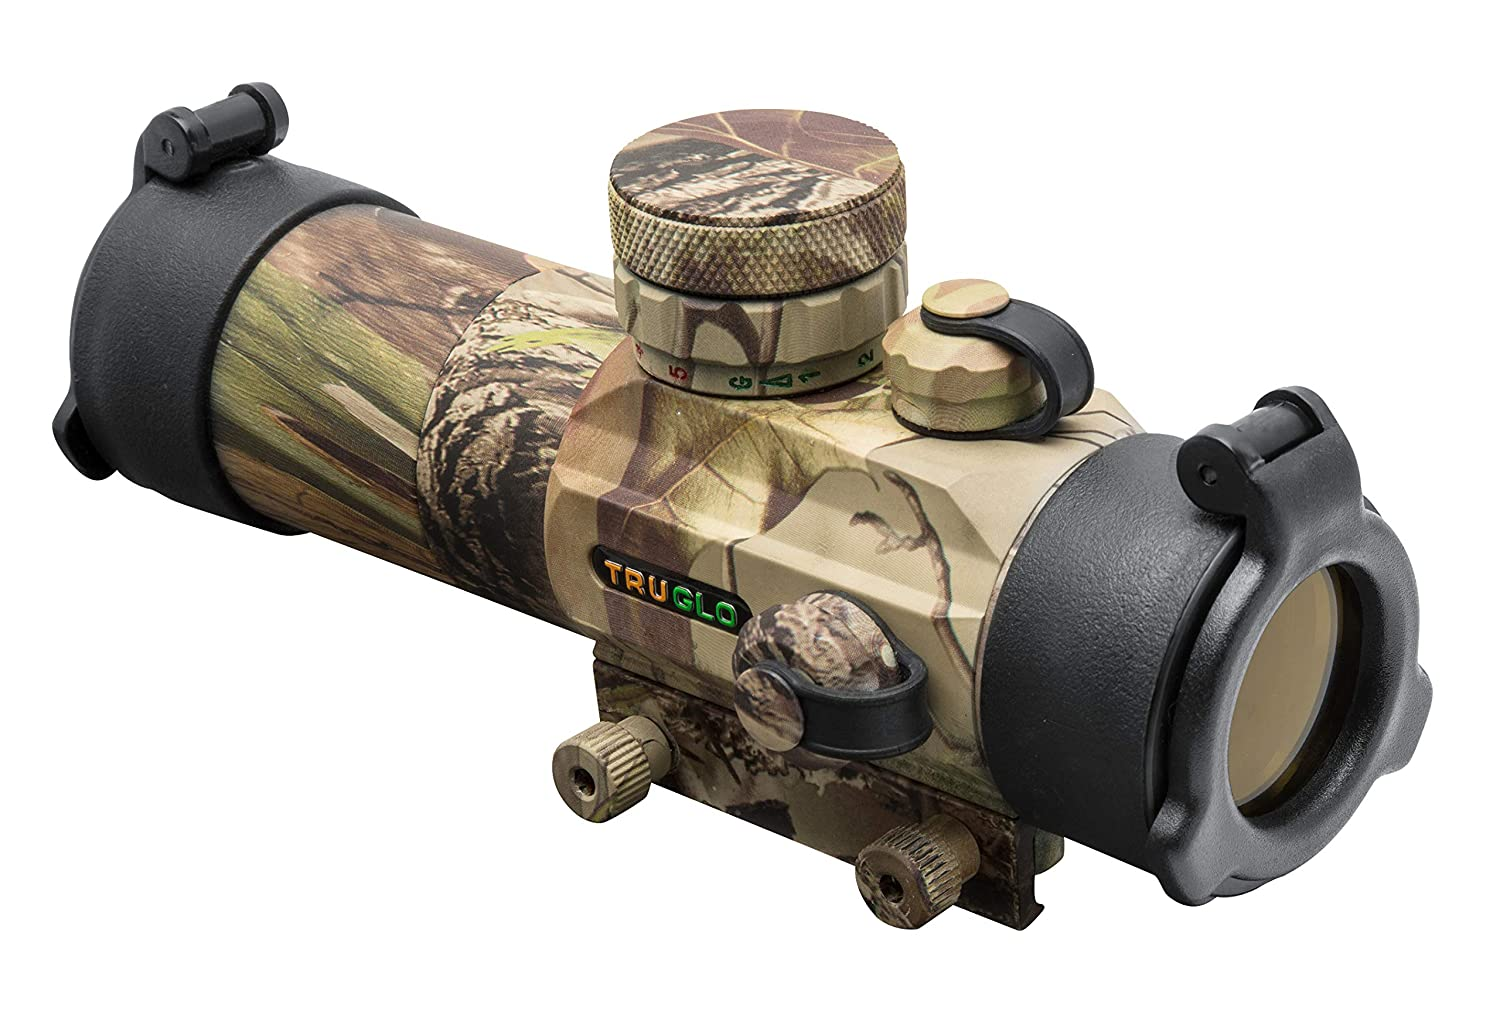 3.TRUGLO GOBBLE-STOPPER 30mm Turkey Hunting Dual-Color Dot Sight